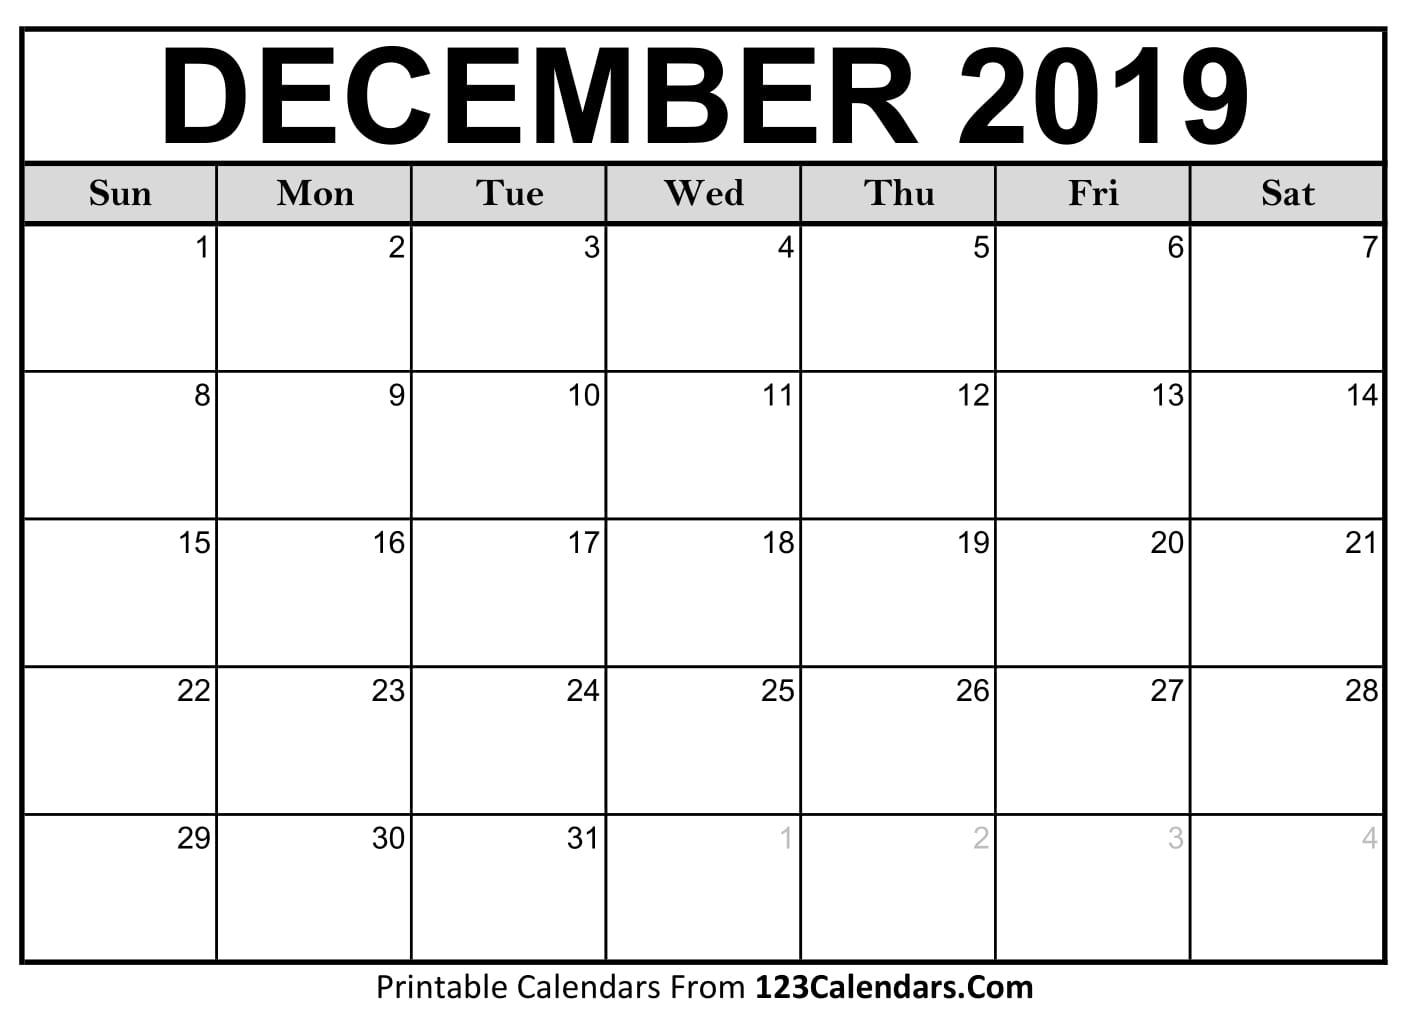 December 2019 Printable Calendar | 123Calendars intended for October Blank Calendar Monday To Friday Only